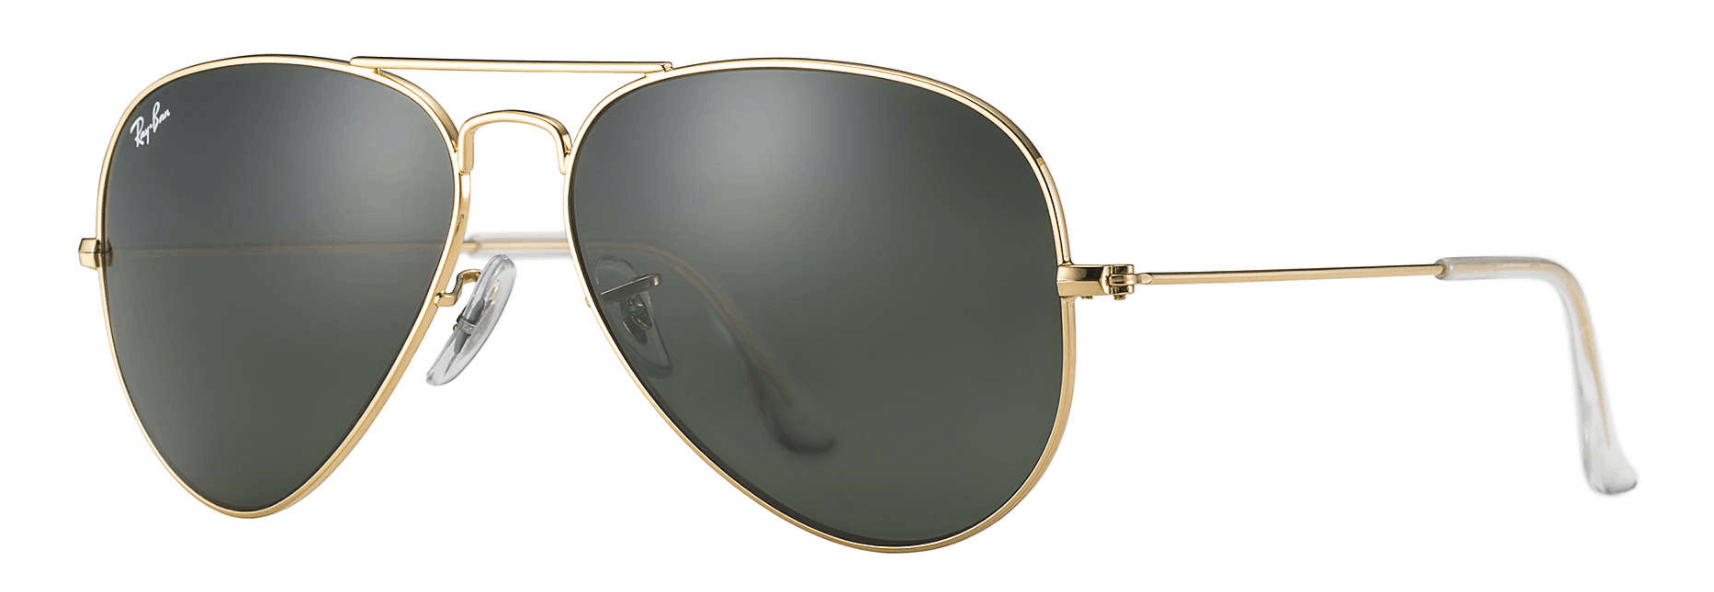 Ray Ban Aviator Classic in Gold